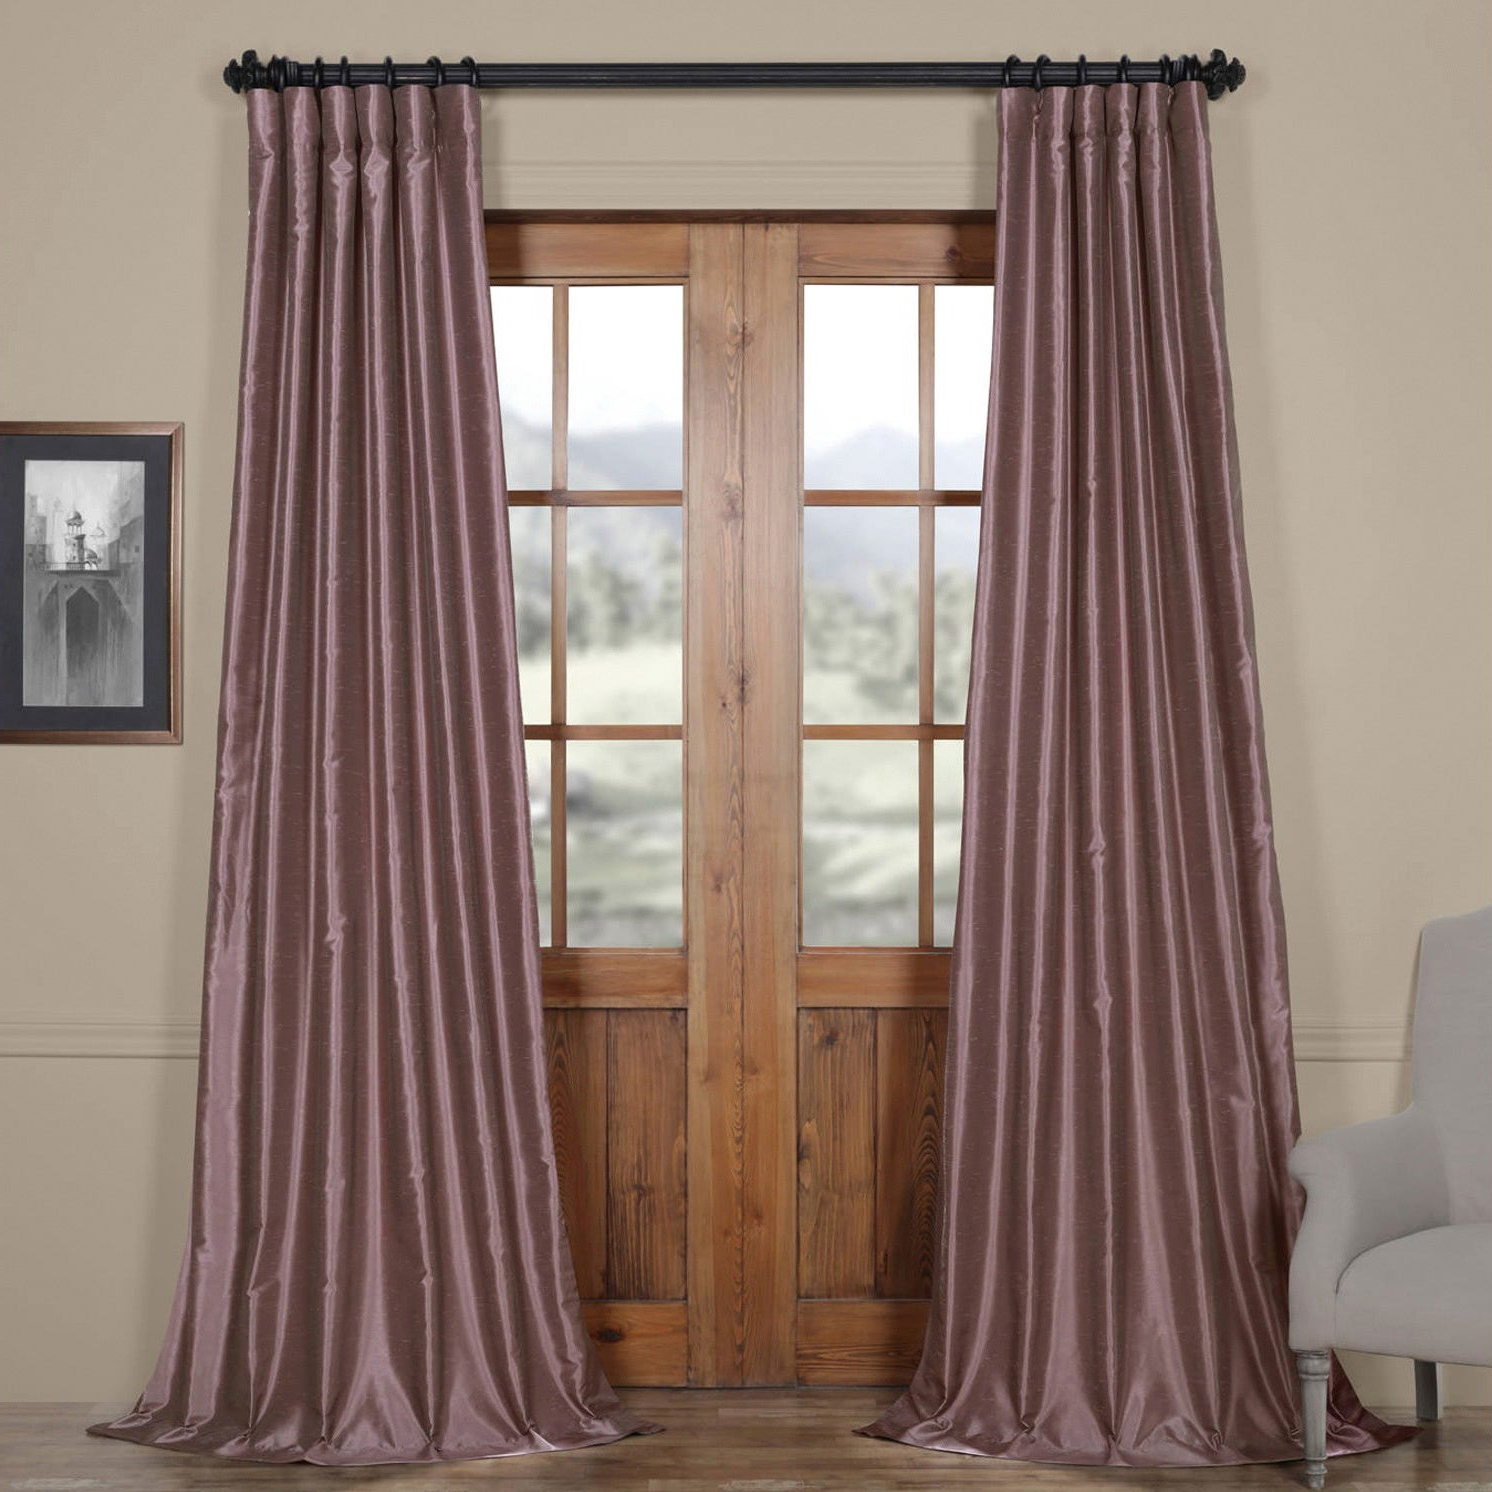 True Blackout Vintage Textured Faux Silk Curtain Panels Throughout Most Current Eff Smoky Plum Vintage Faux Dupioni Silk Curtain Panel (View 16 of 20)